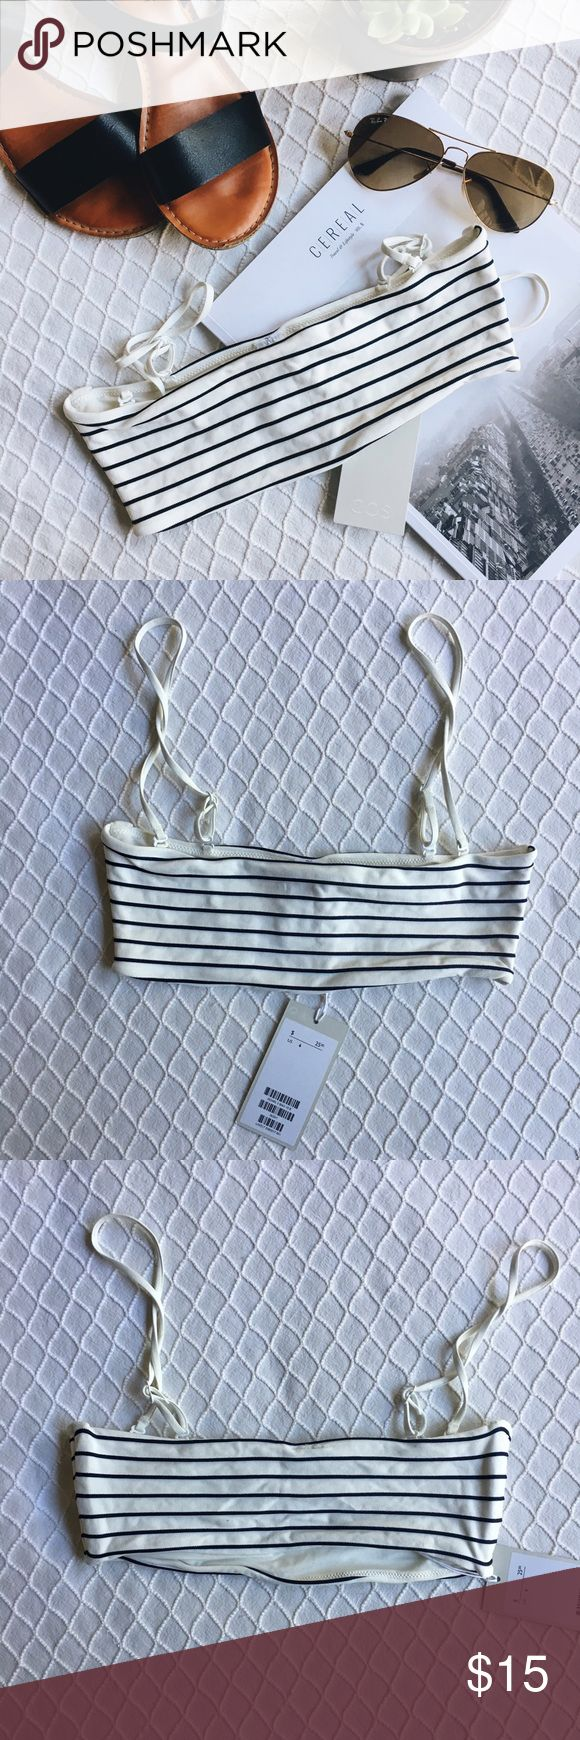 """COS Striped Bandeau Bikini Top Really adorable NWT bikini top with removable straps. This is marked as a 6, but I ordered it and it's quite small on me—about 11"""" wide laying flat. Is say it would better fit someone who is a large A or a small B. Never worn, just tried on. Stripes are a very, very dark navy, I believe 🖤 COS Swim Bikinis"""